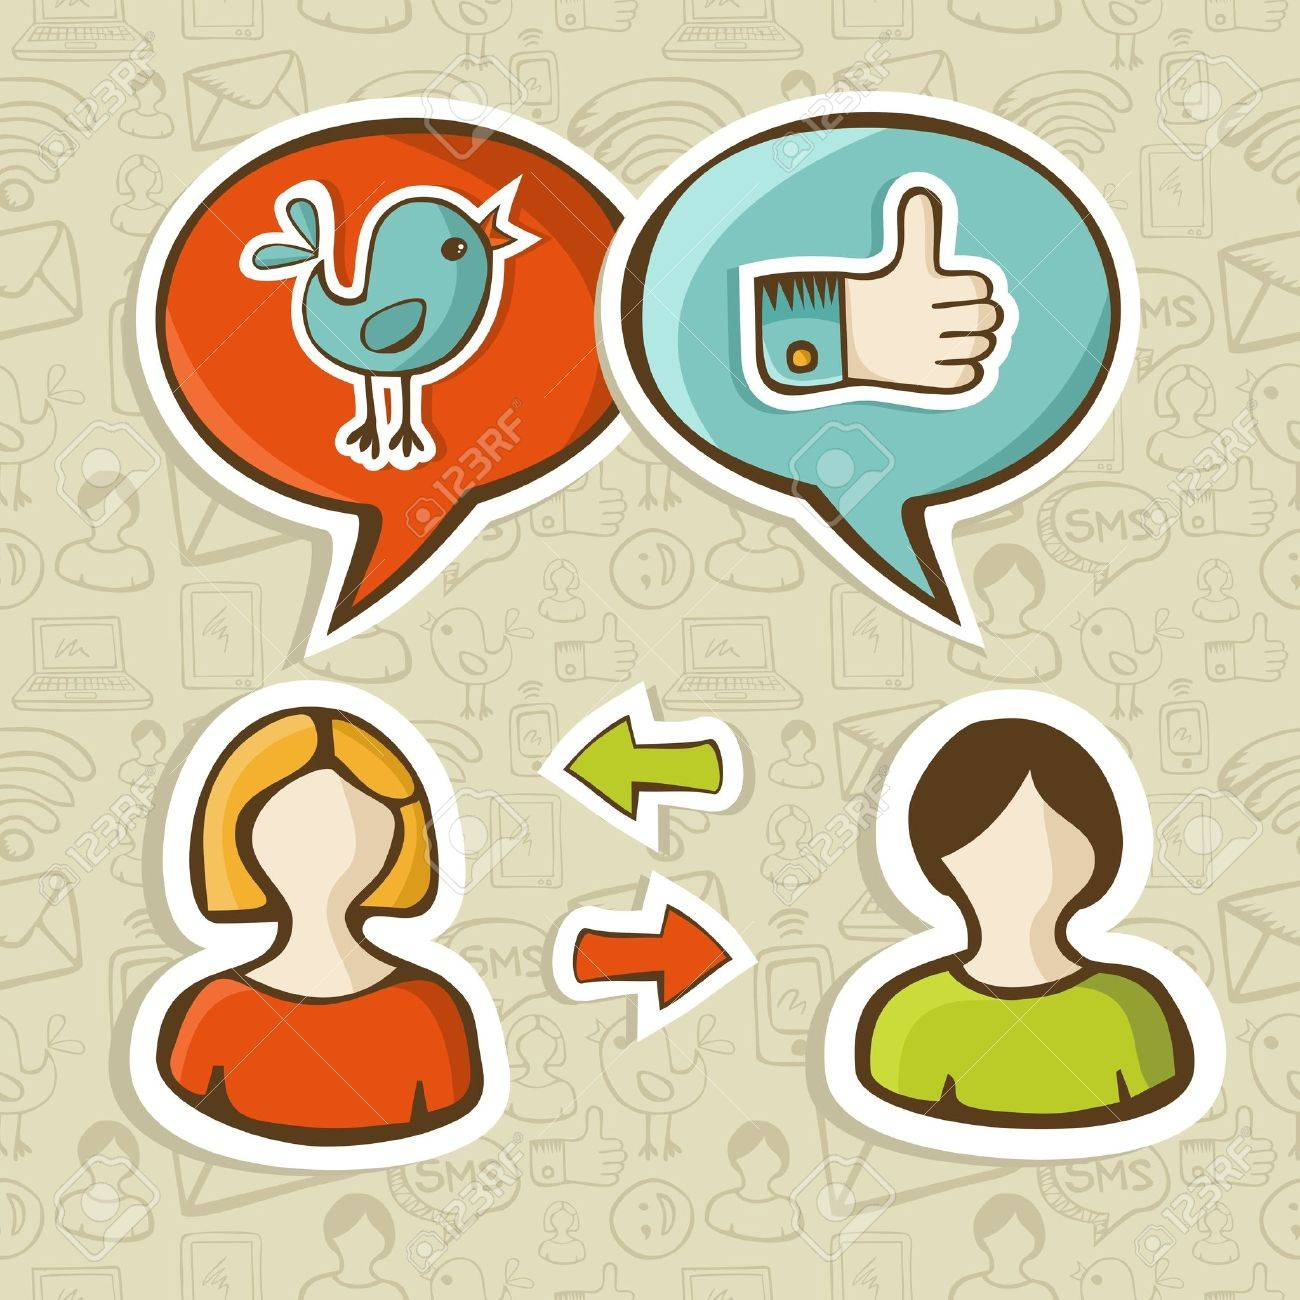 Social media networks twitter and facebook like icons in speech bubble connecting people  Vector illustration layered for easy manipulation and custom coloring Stock Vector - 16307600